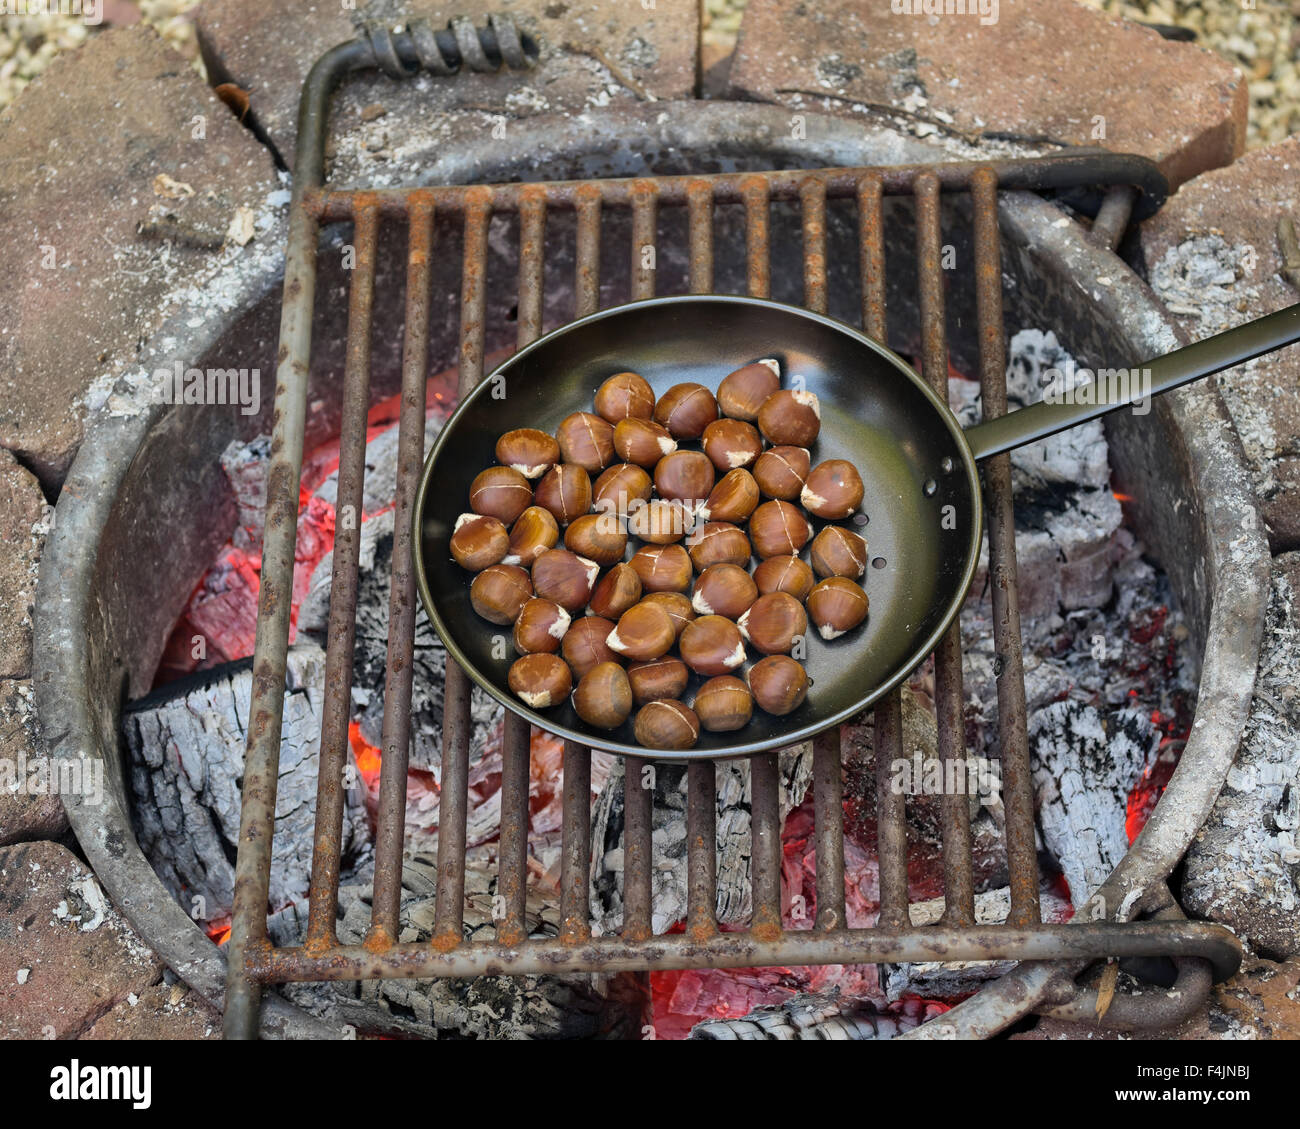 chestnuts roasting on an open fire - Stock Image